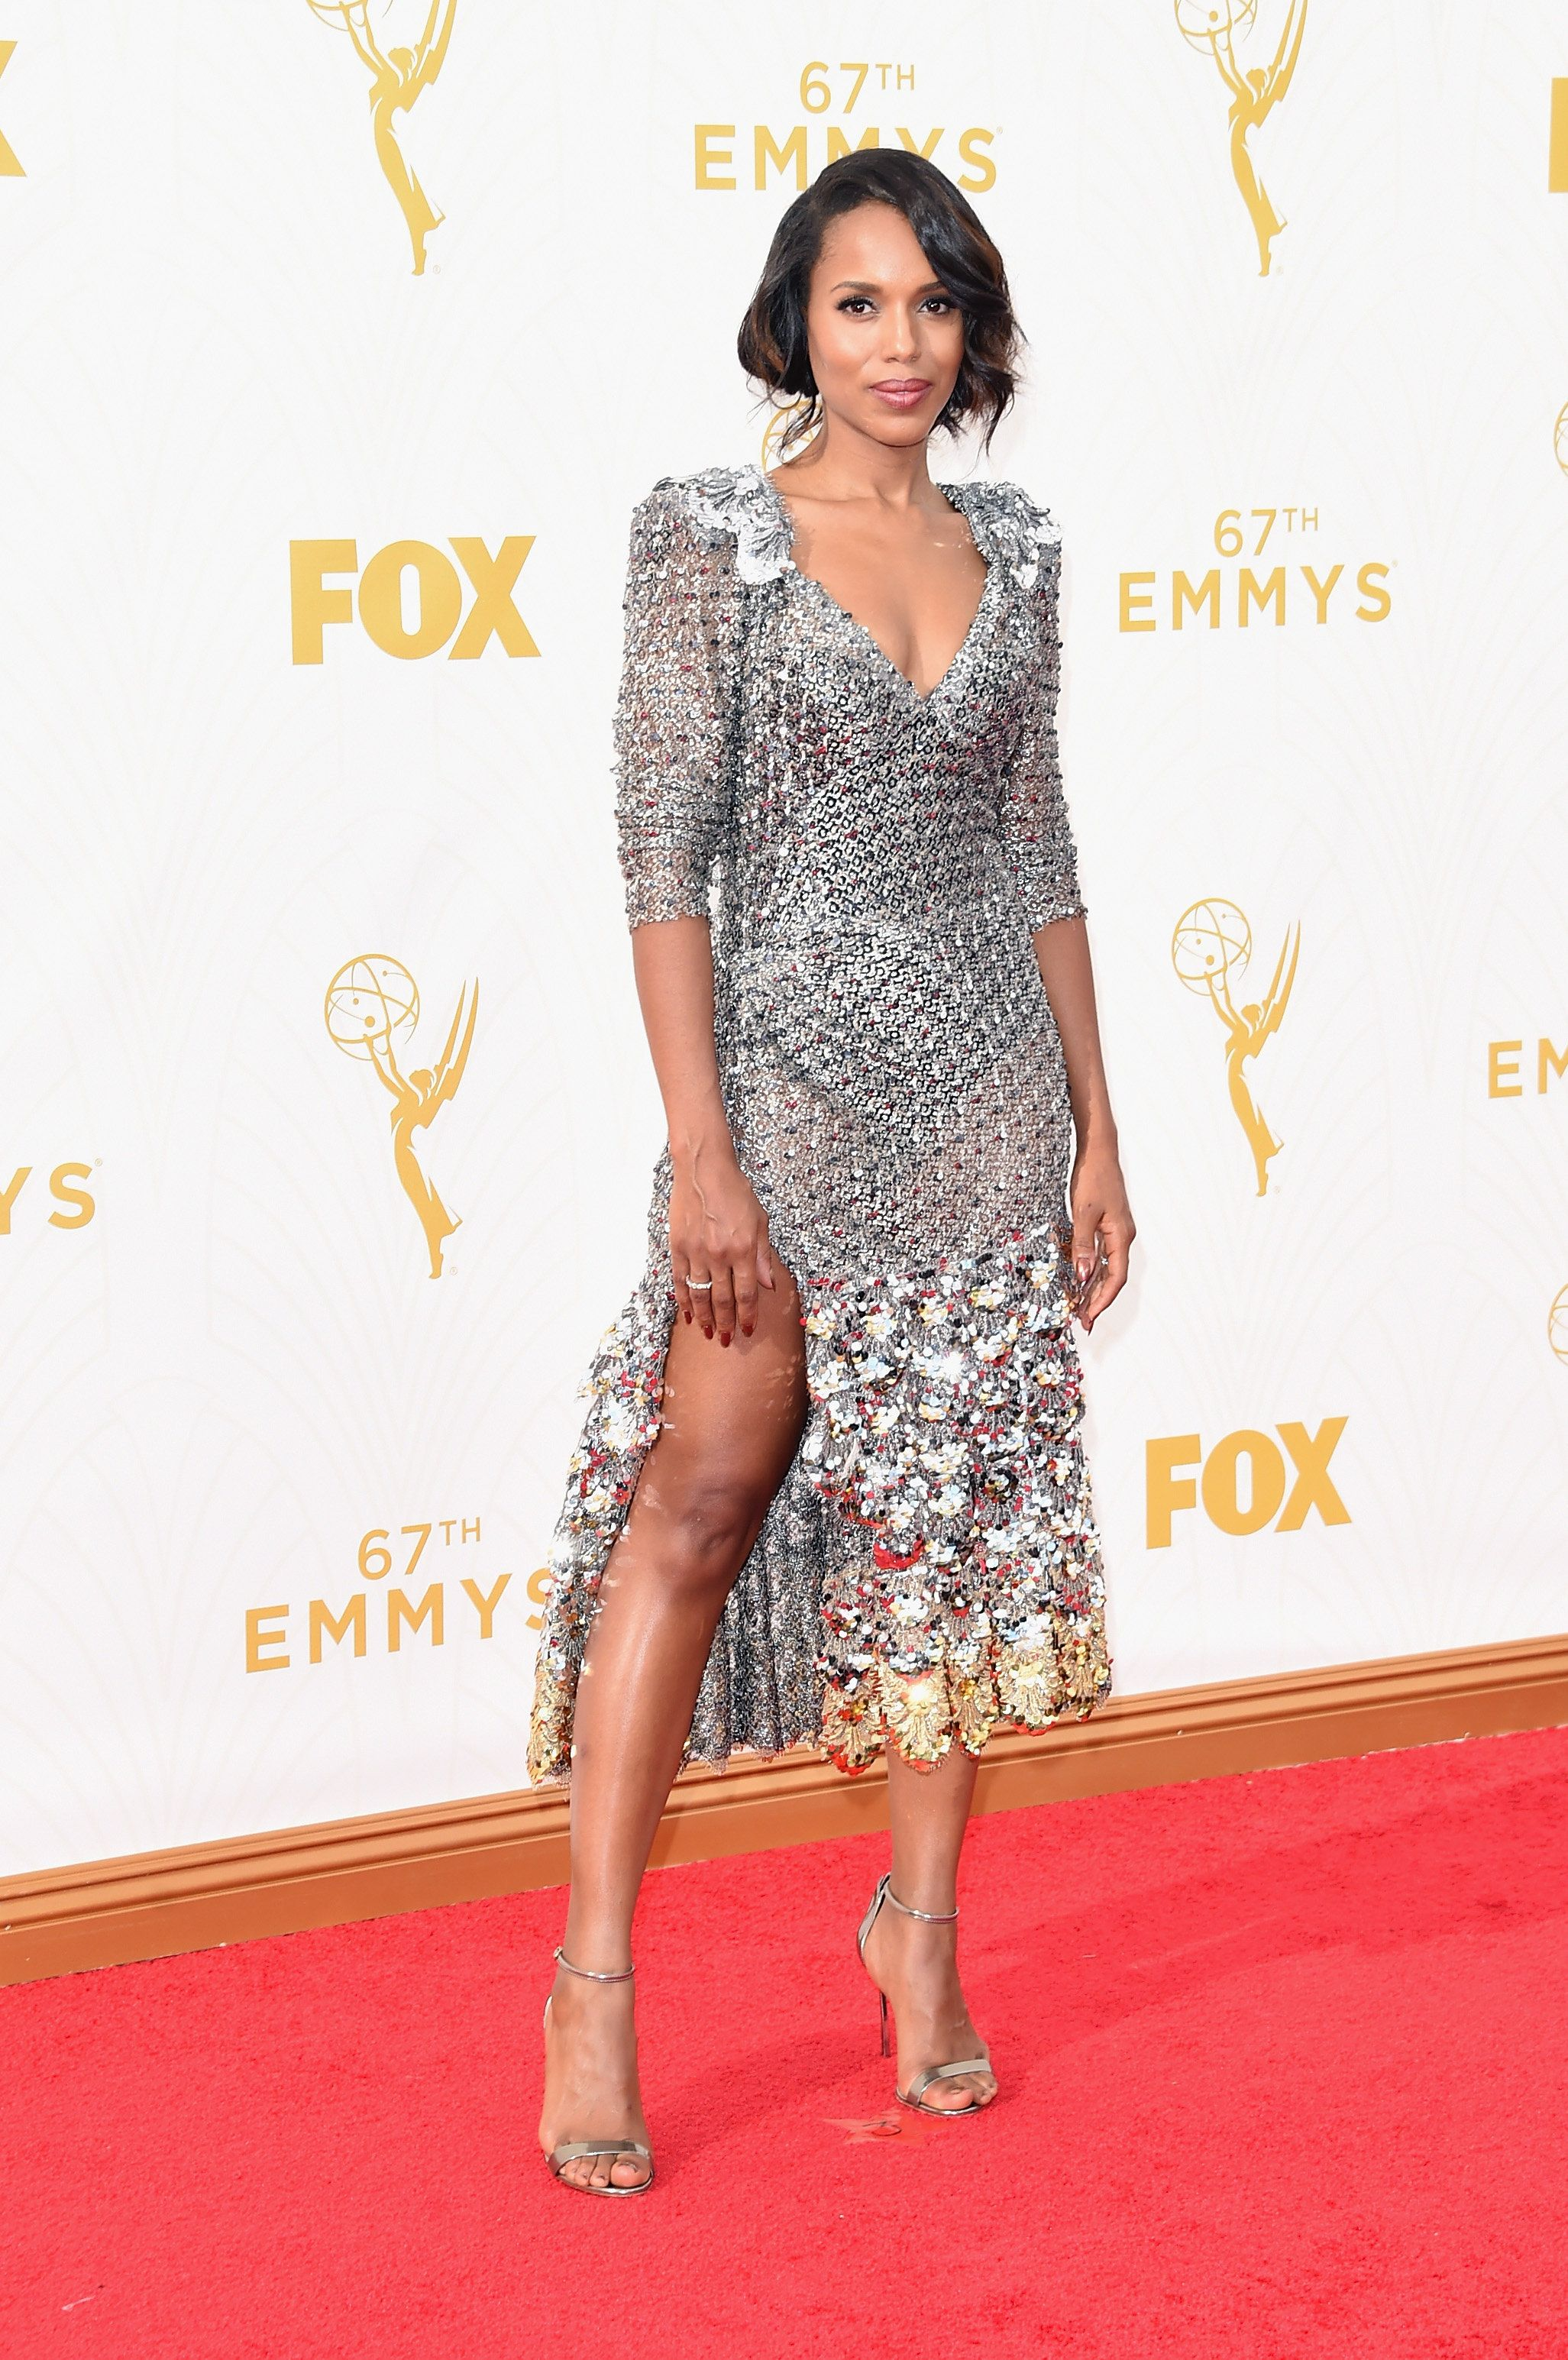 "<span class='image-component__caption' itemprop=""caption"">LOS ANGELES, CA - SEPTEMBER 20: Actress Kerry Washington attends the 67th Annual Primetime Emmy Awards at Microsoft Theater on September 20, 2015 in Los Angeles, California. (Photo by Jason Merritt/Getty Images)</span>"